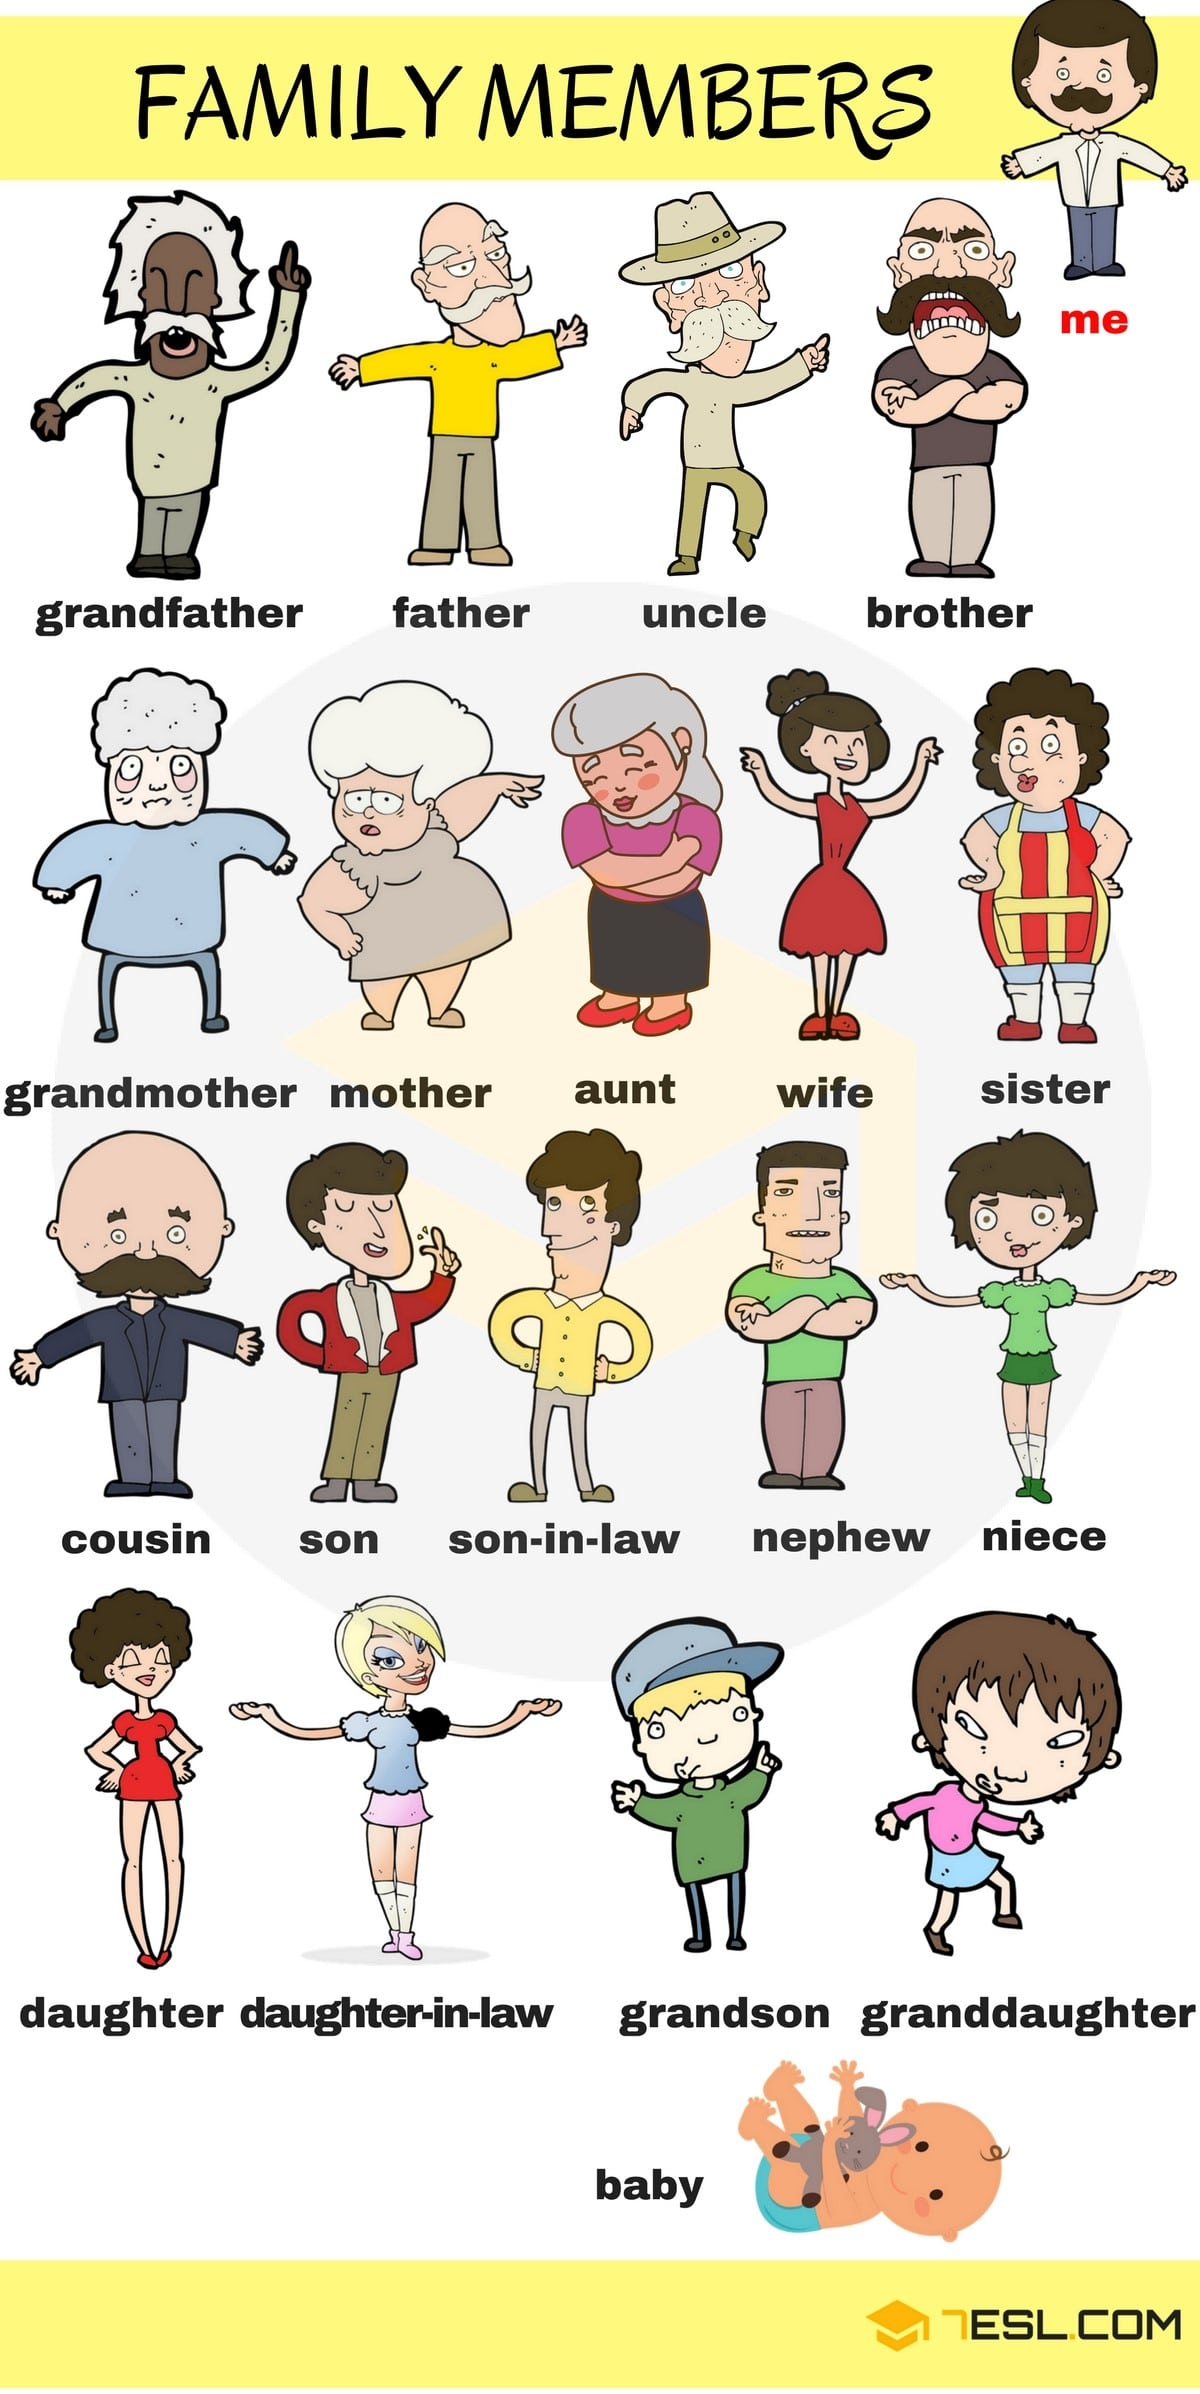 Aunt clipart individual family member. Members of the vocabulary